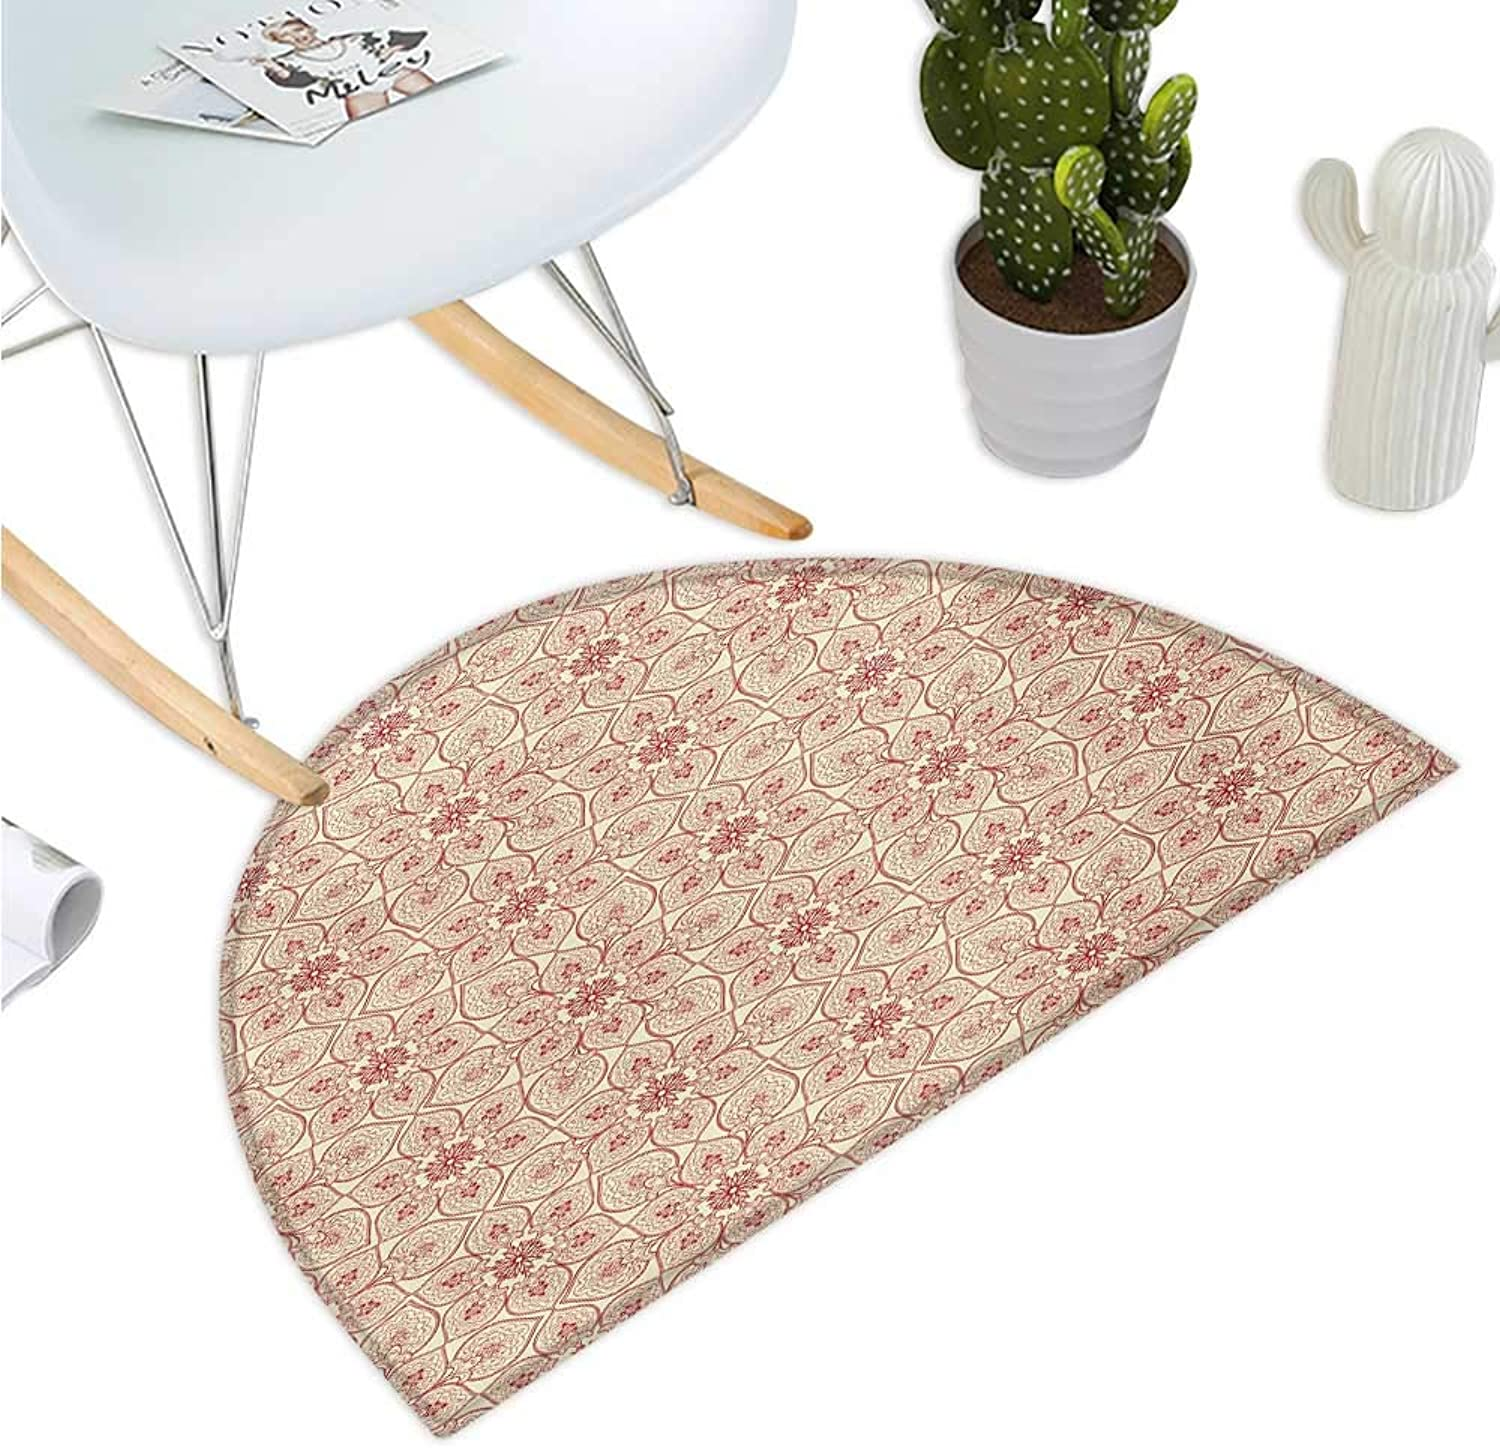 Antique Semicircular Cushion Curved Tree Branch with Fantastic Flowers Leaves Flourish Asian Tile Pattern Entry Door Mat H 43.3  xD 64.9  Dark Coral Beige